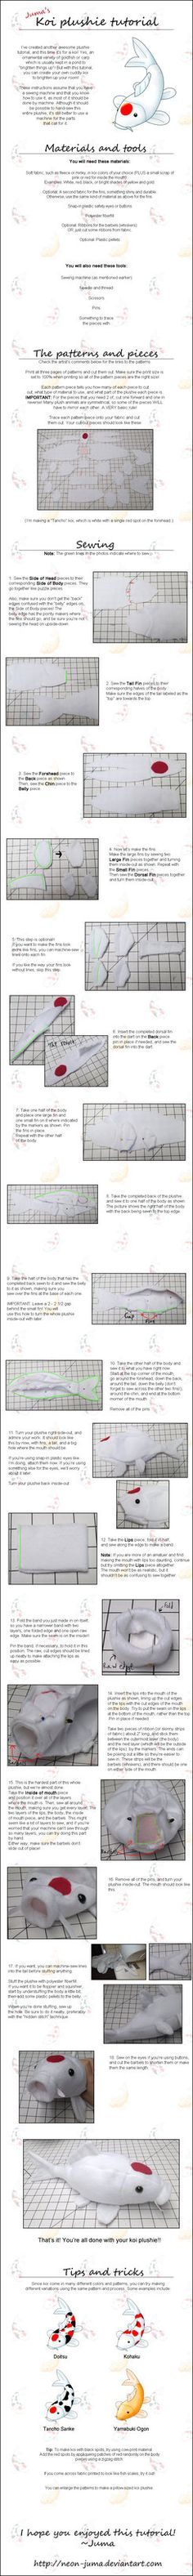 A tutorial for making a koi fish plushie like this one:fav.me/d6svbyq If you use this tutorial, I'd love to see what you made! Patterns: Page 1: fav.me/d6svd9g Page 2: fav.me/d6svd9u Page 3: fav.me...